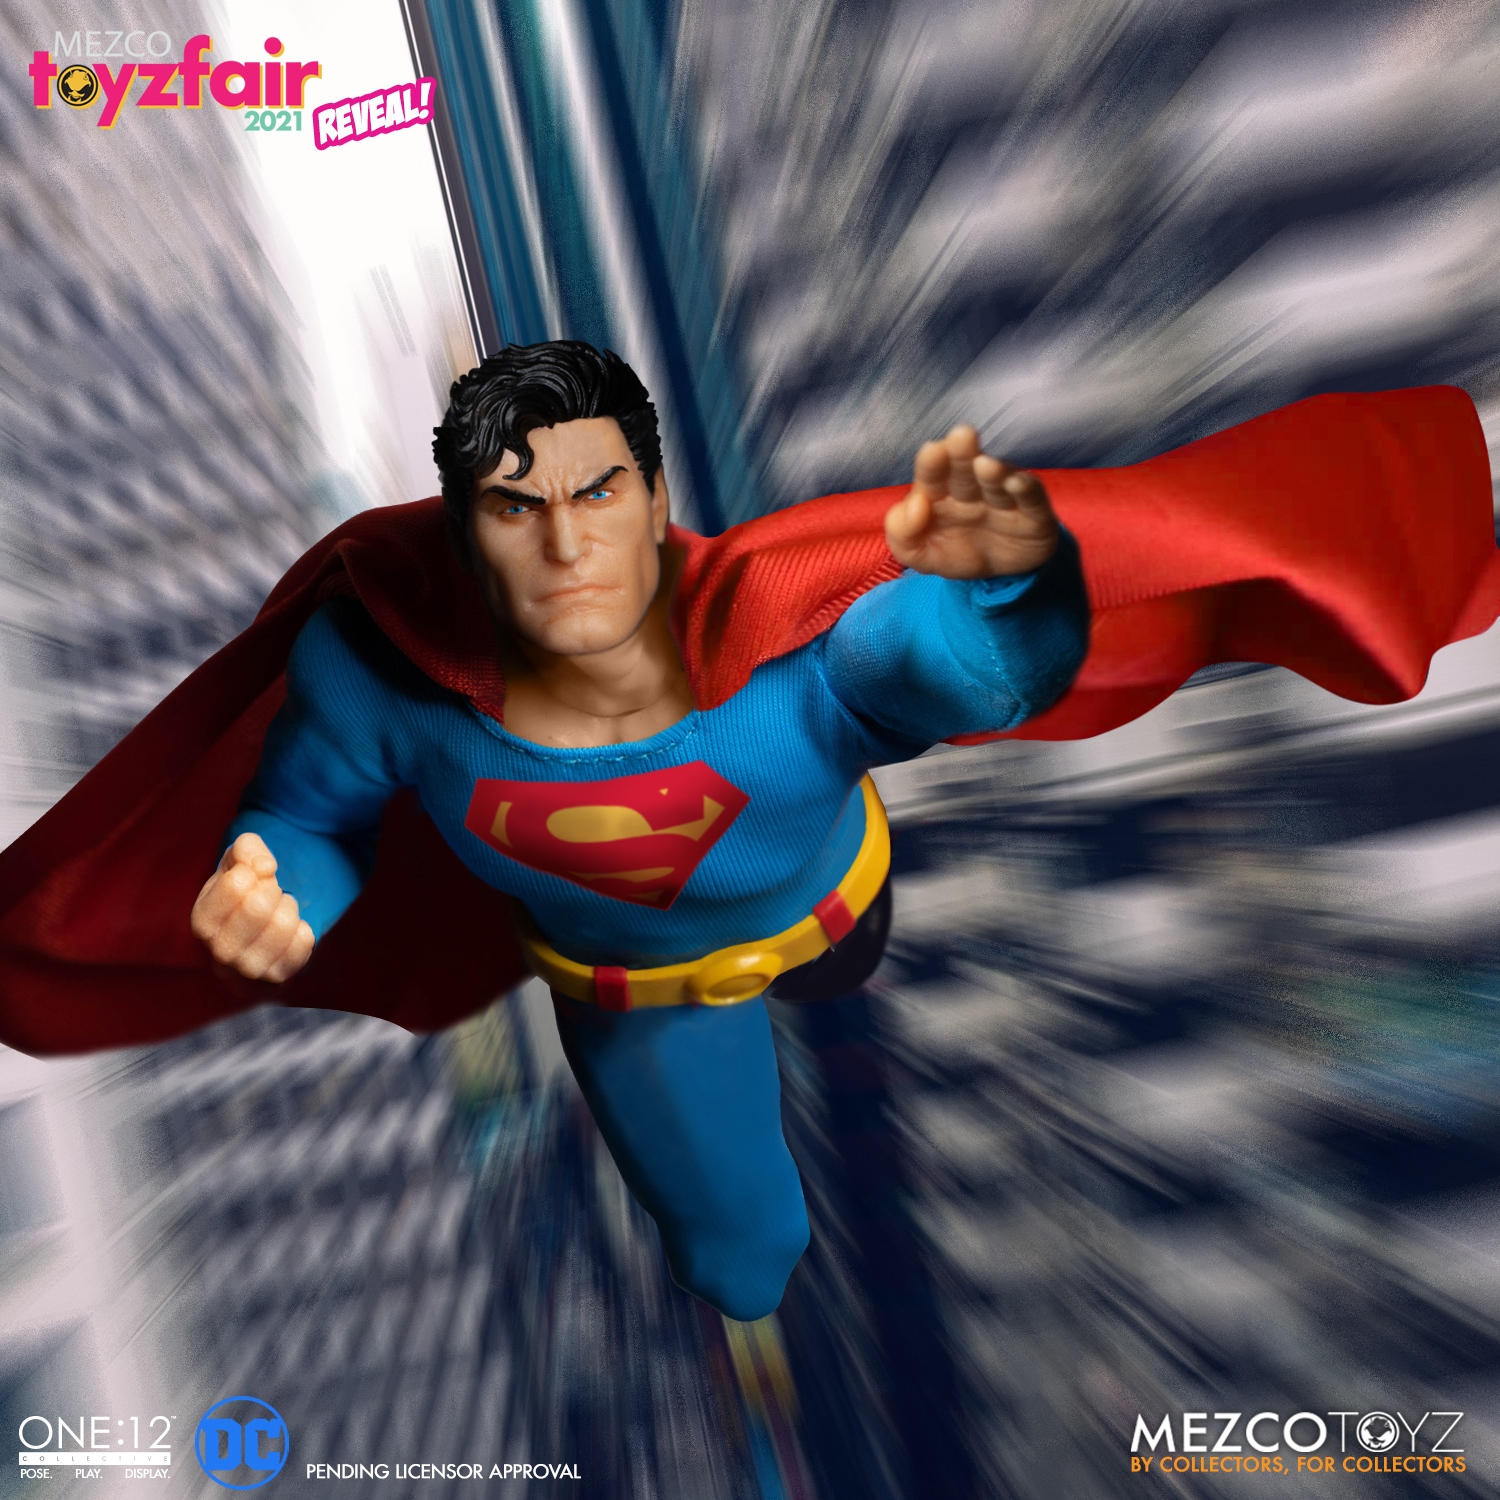 Mezco Superman One:12 Collective Figure